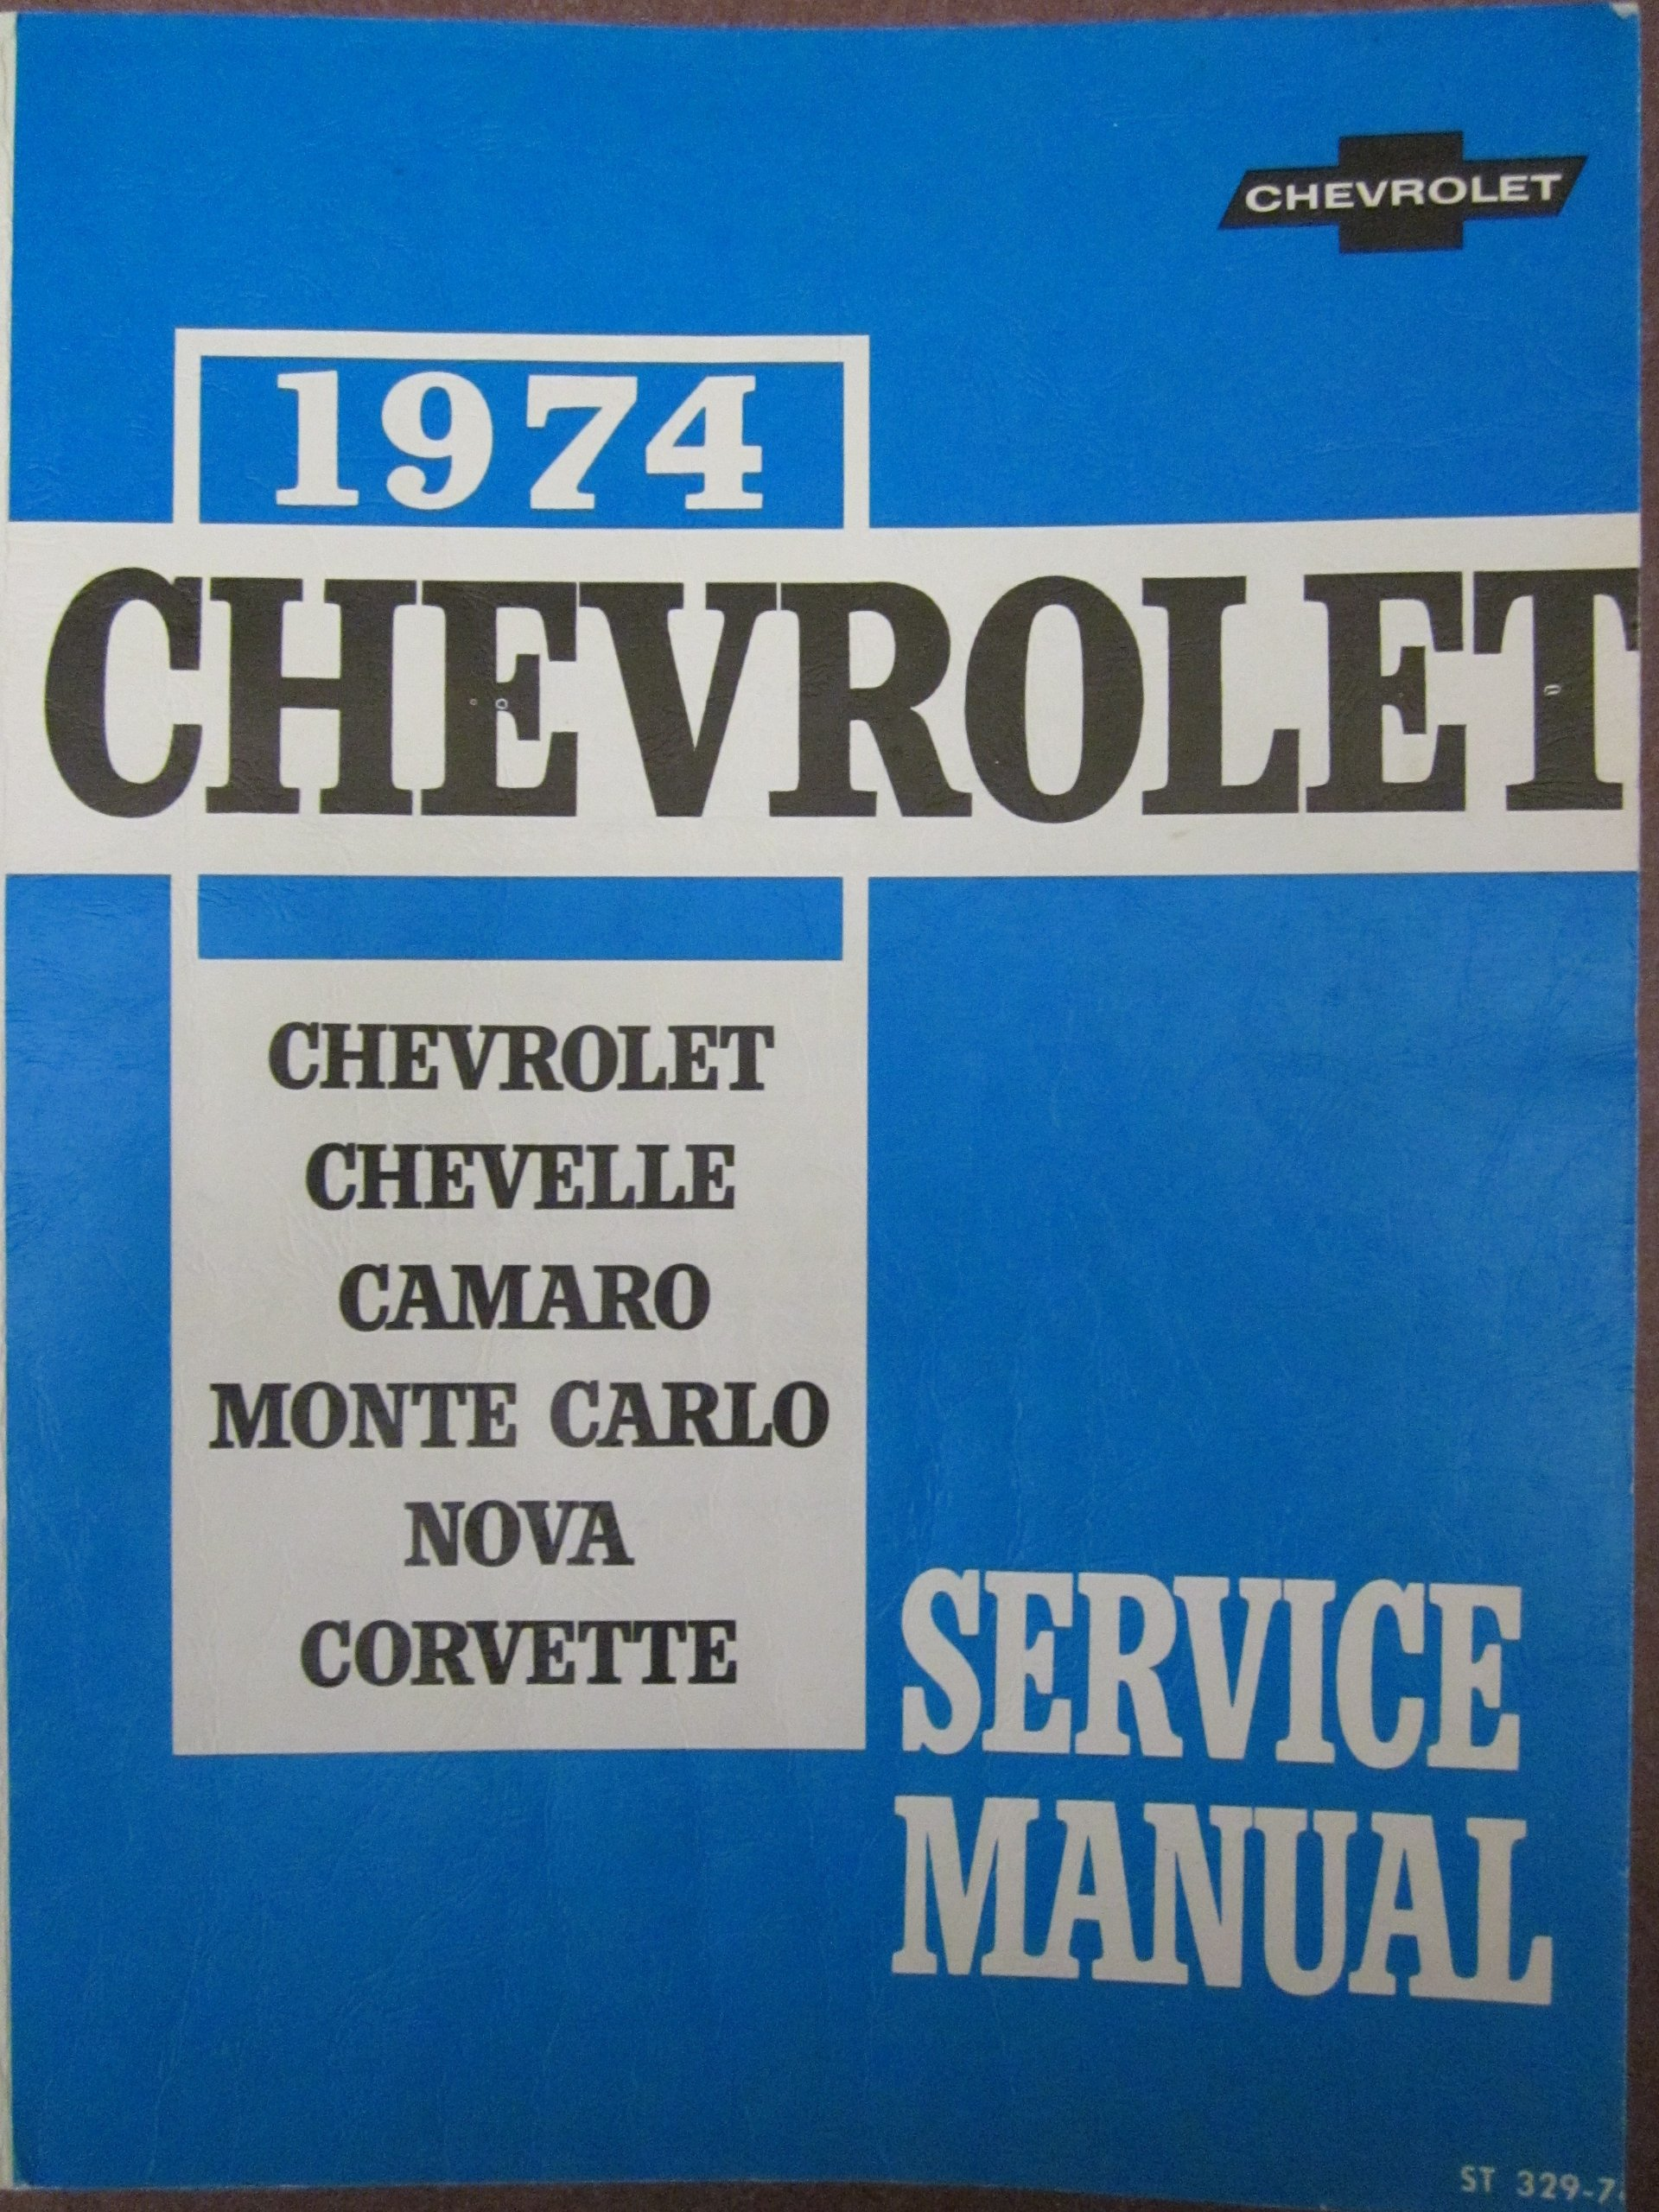 1974 Chevrolet Chassis Service Manual Covering Chevelle Wiring Diagram Chevy Camaro Monte Carlo Nova And Corvette Books